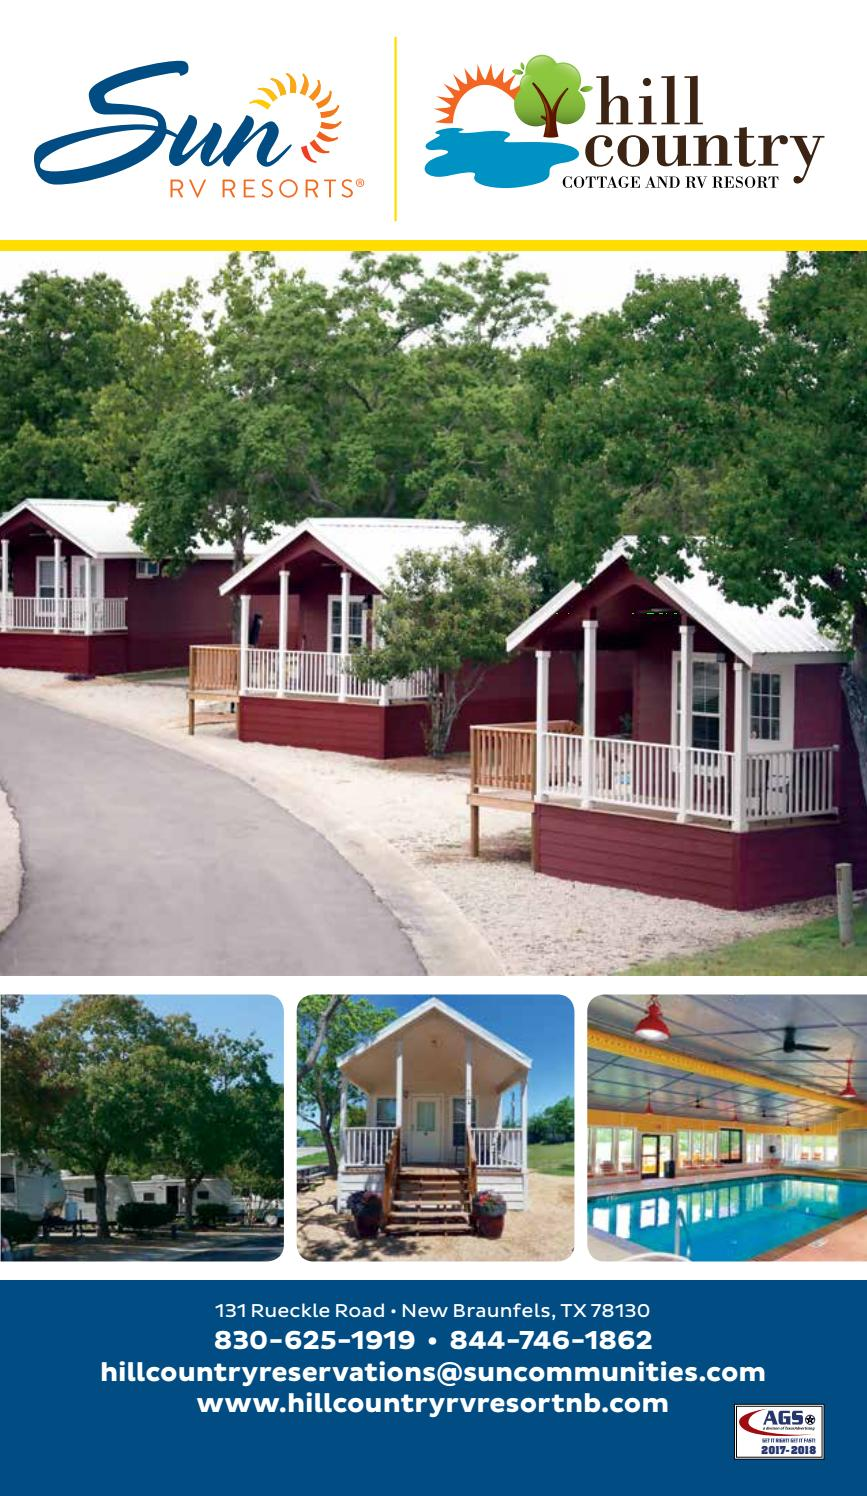 Hill Country Rv Resort Amp Cottage Rentals By Ags Texas